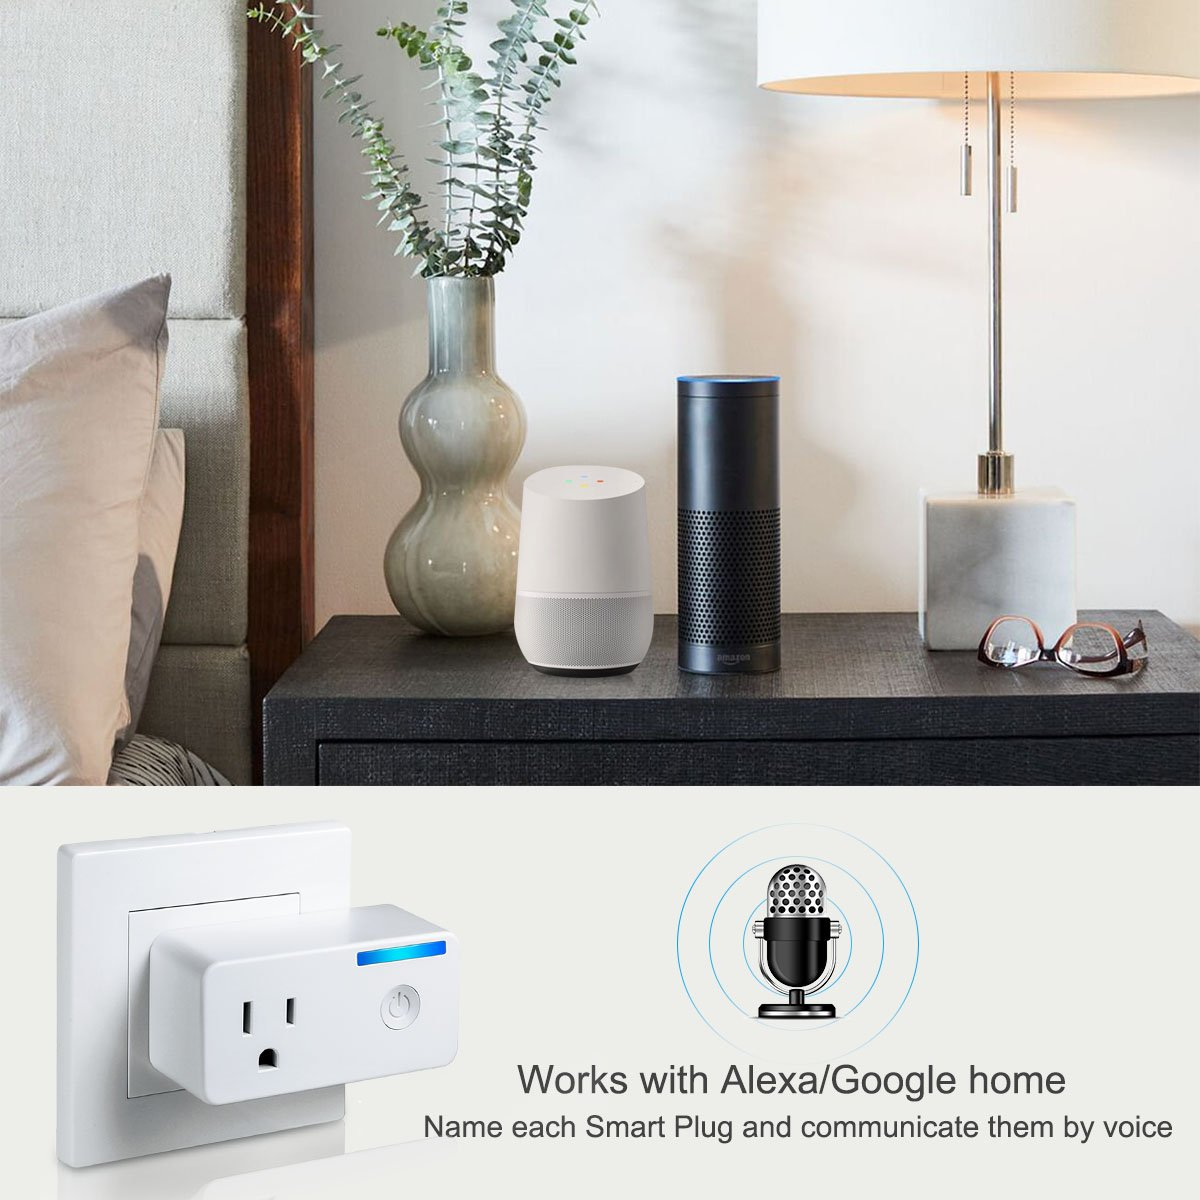 Wifi Smart Plug – Tocode Upgrade 16A Wireless Switch Outlet Plug Works with Amazon Alexa and Google Home – No Hub Required, Remotely Operate Your Devices from Anywhere